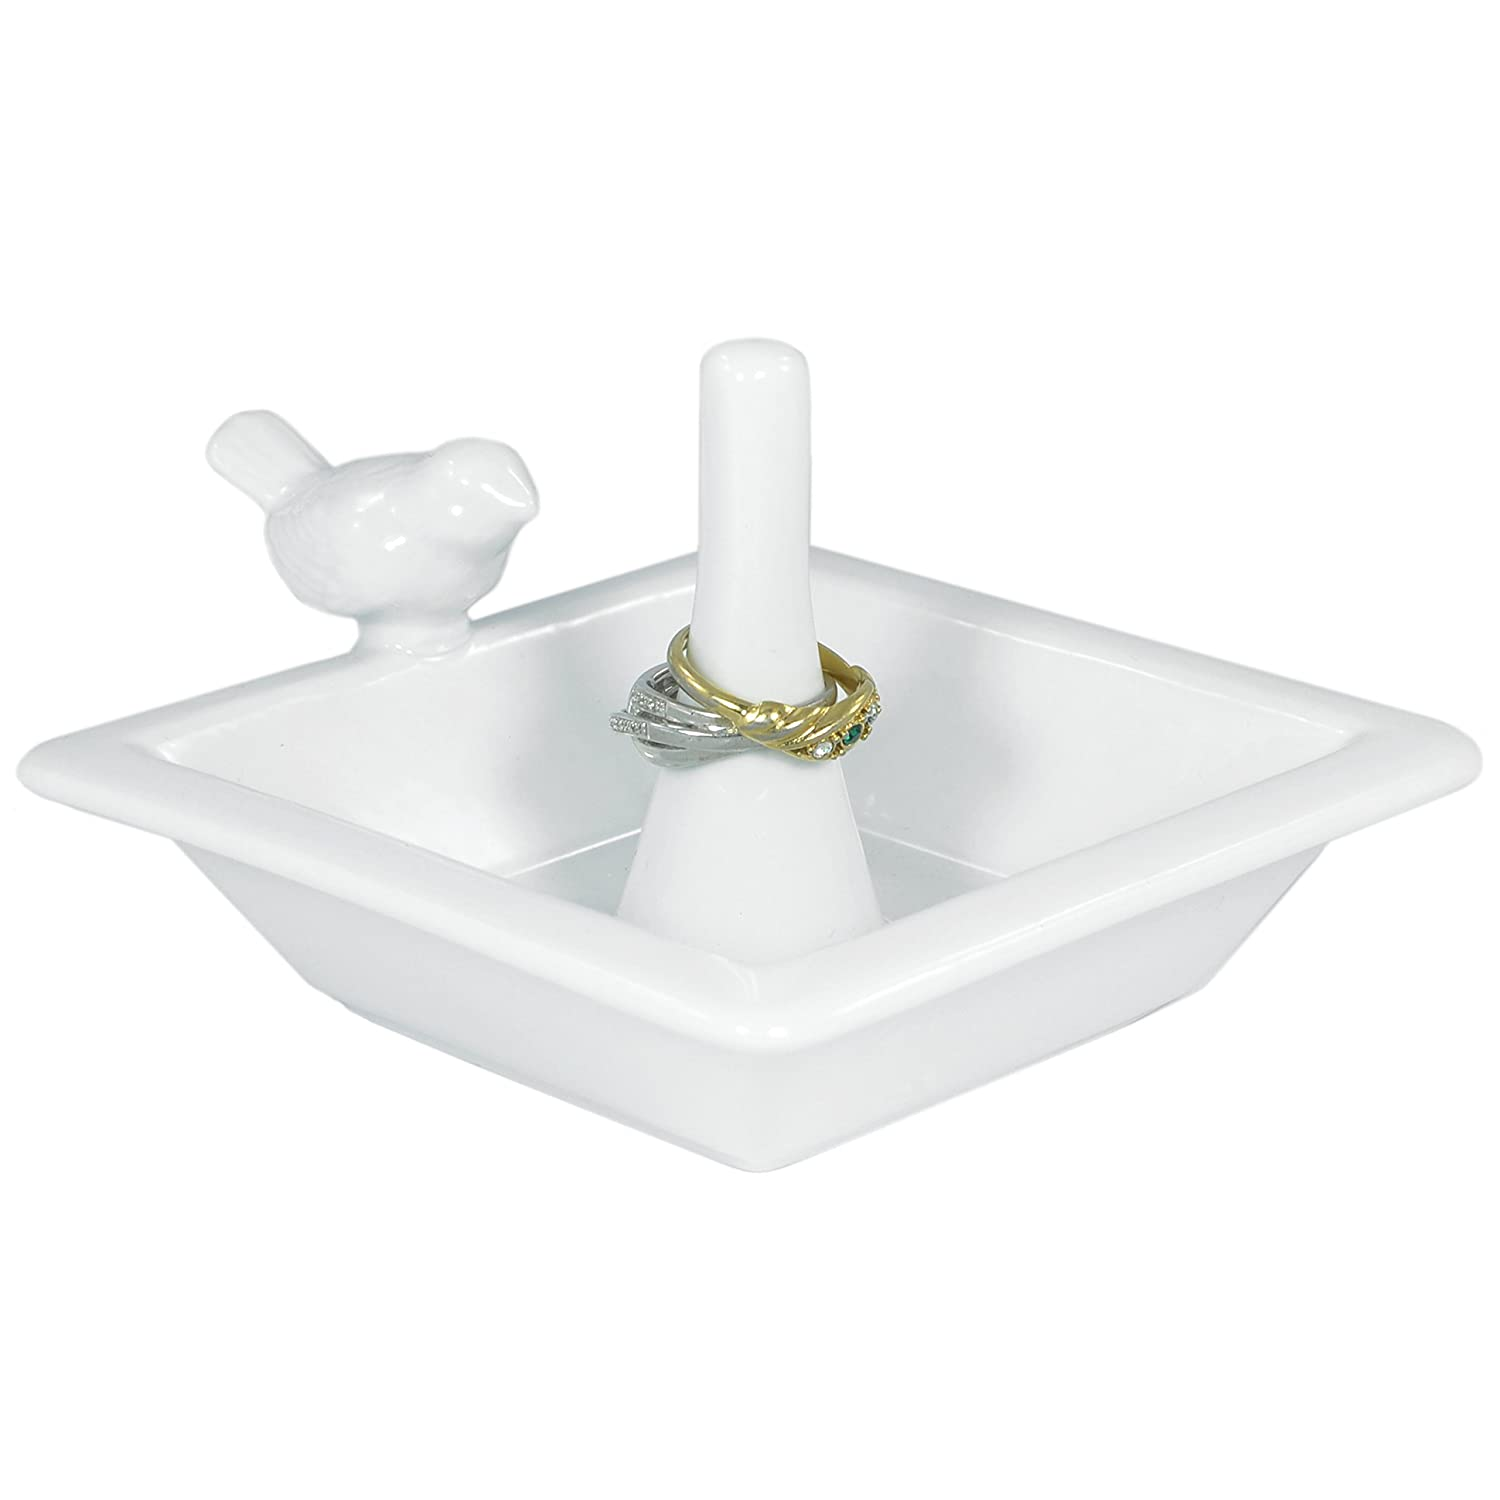 Classic White Bird Bath Ceramic Ring Holder / Jewelry Dish Tray - MyGift® AX-AY-ABHI-75650